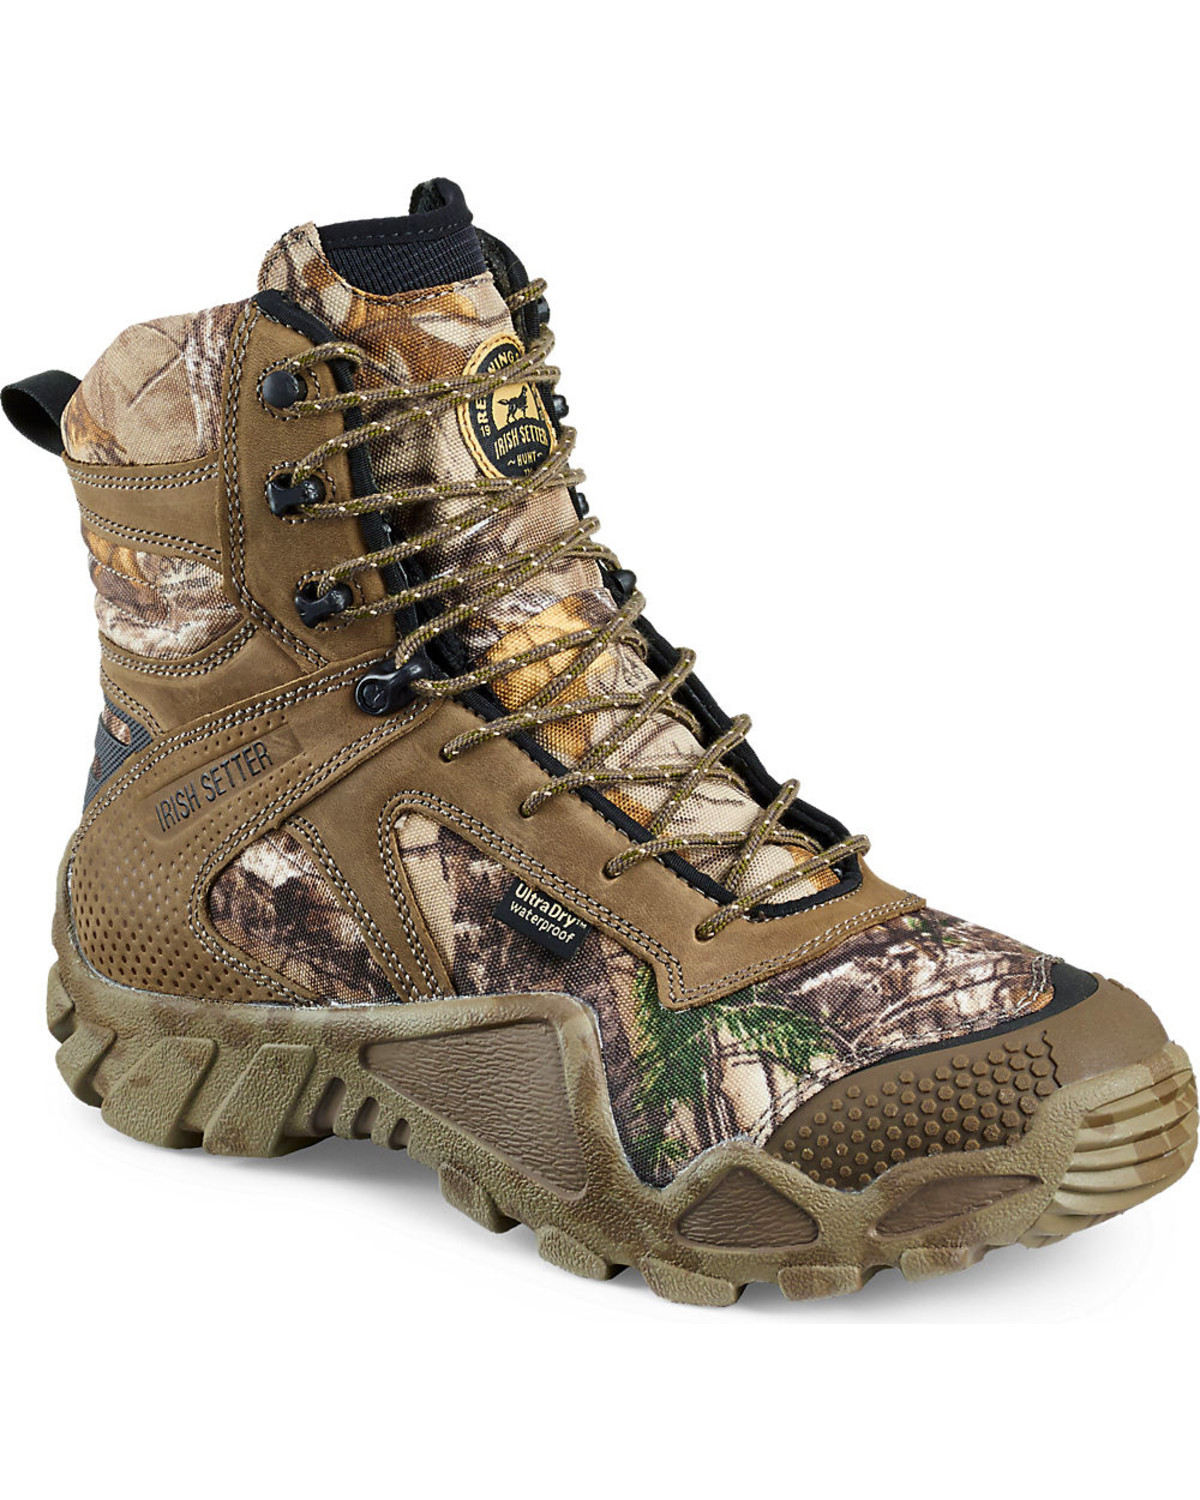 2b9ca8b773c Irish Setter by Red Wing Shoes Men's Realtree Xtra Vaprtrek Insulated  Waterproof 8